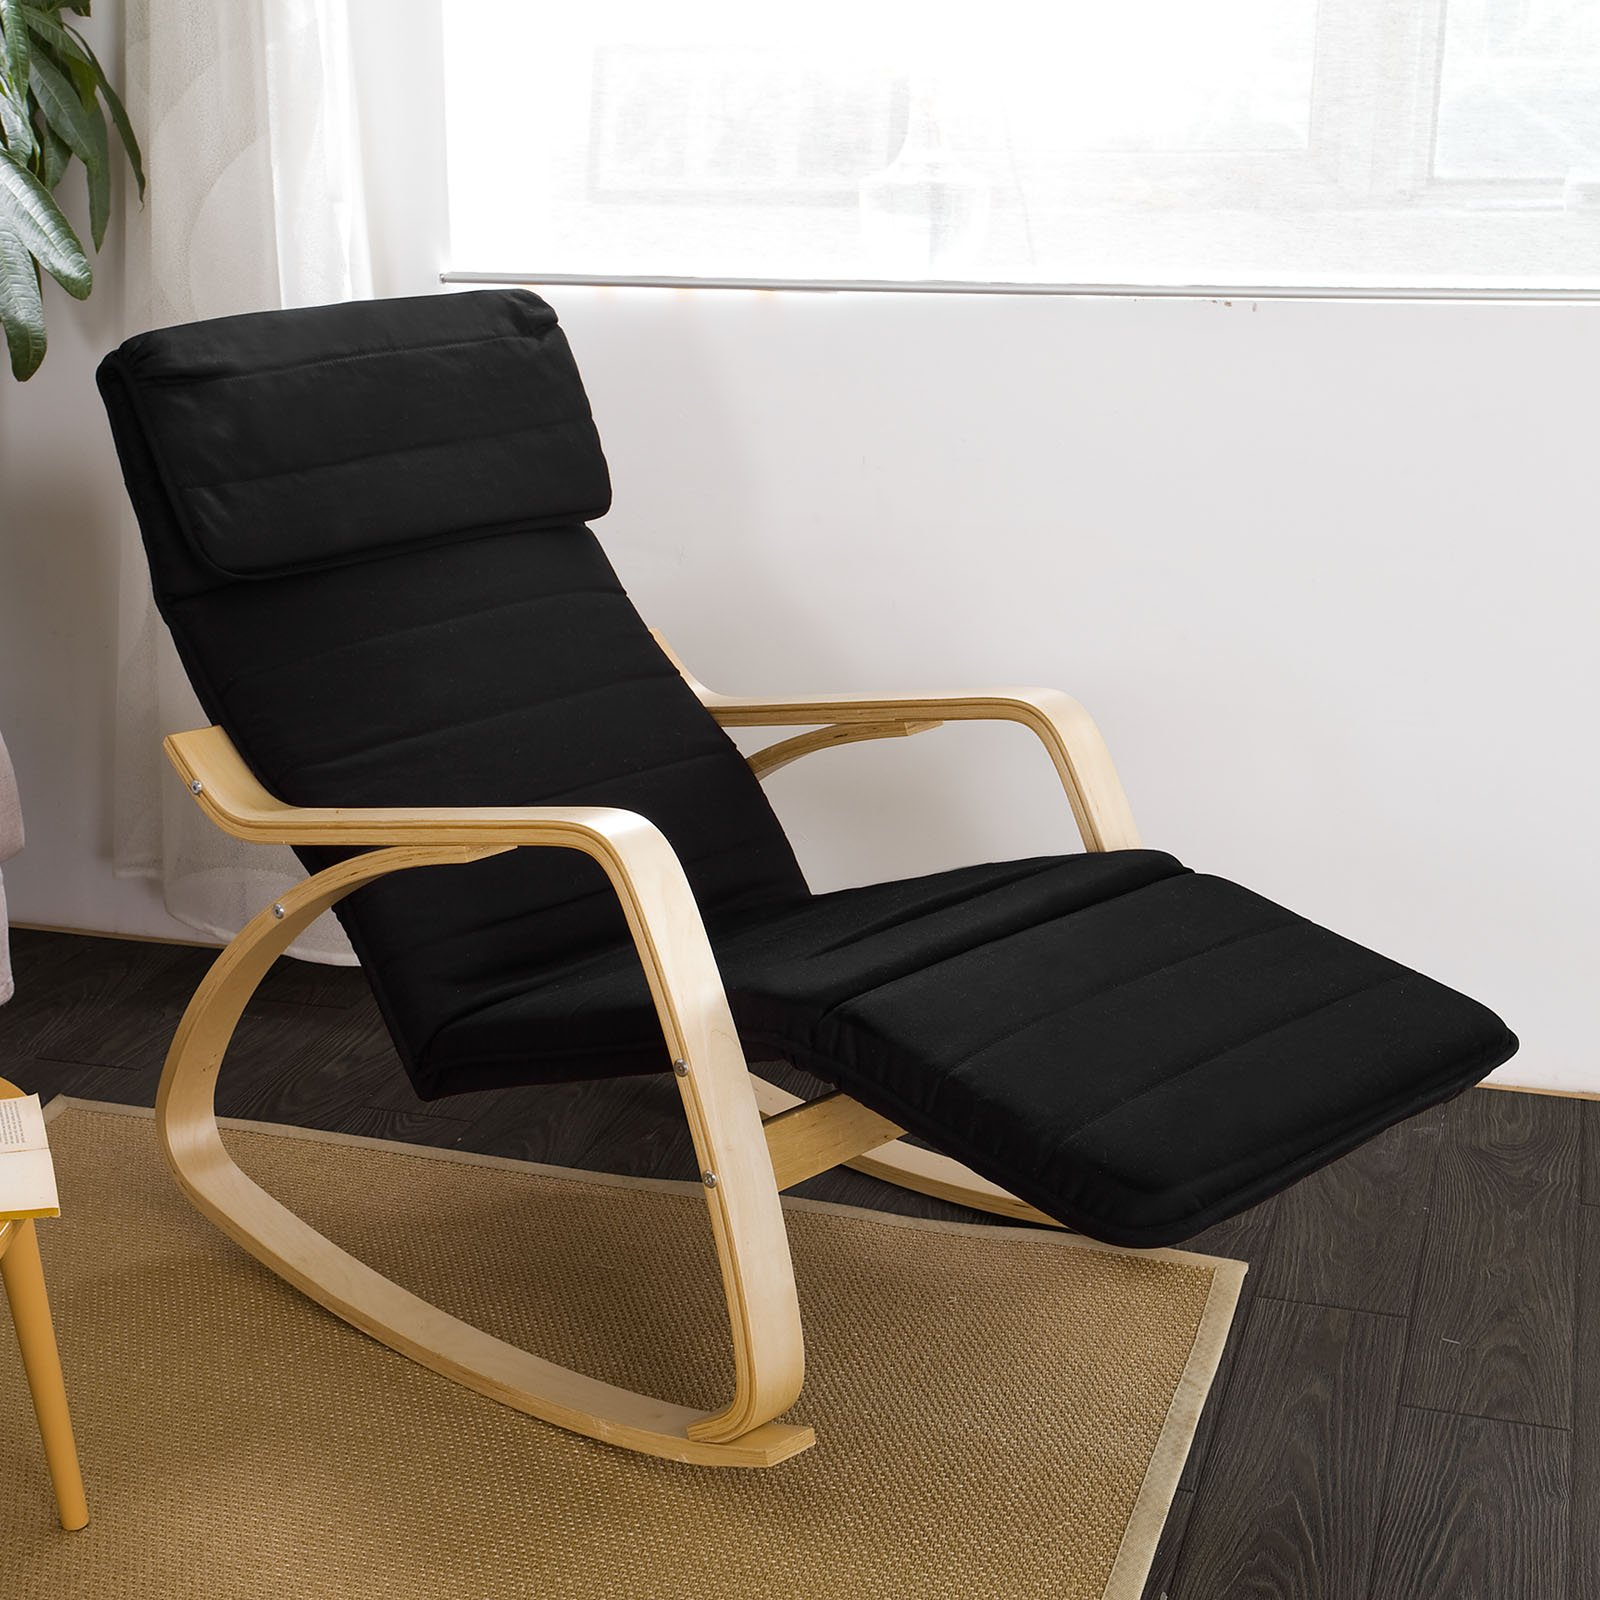 Haotian Comfortable Relax Rocking Chair with Foot Rest Design, Lounge Chair, Recliners Poly-cotton Fabric Cushion FST16 (black) by SoBuy (Image #2)